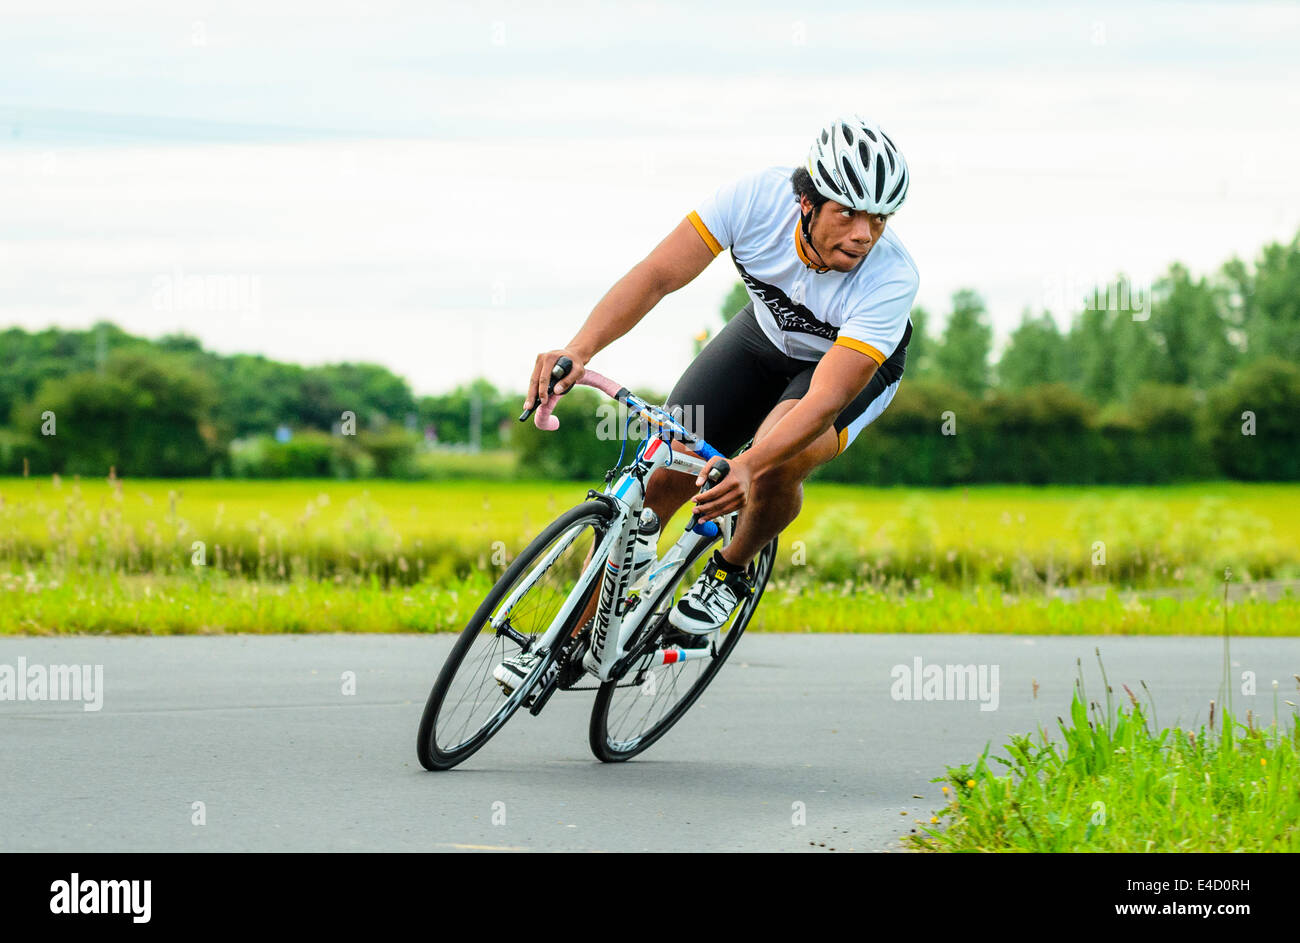 Cyclist racing in criterium event on dedicated cycle circuit at York Sport Village York Yorkshire Stock Photo